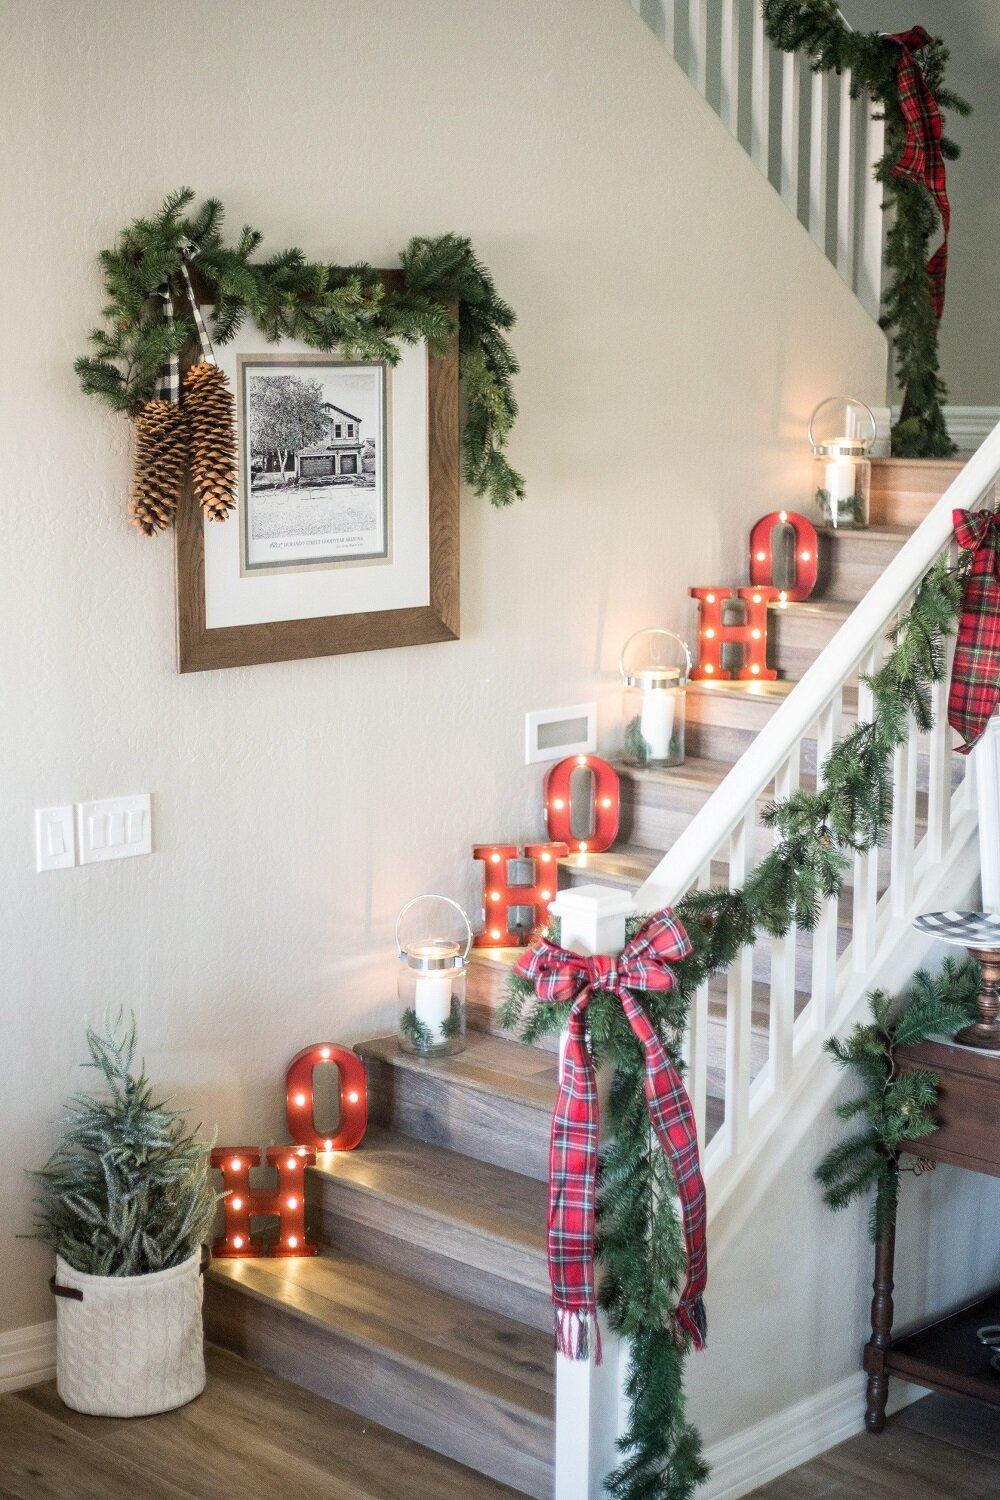 t3-2-1 Great decoration ideas for Christmas stairs that you should definitely try